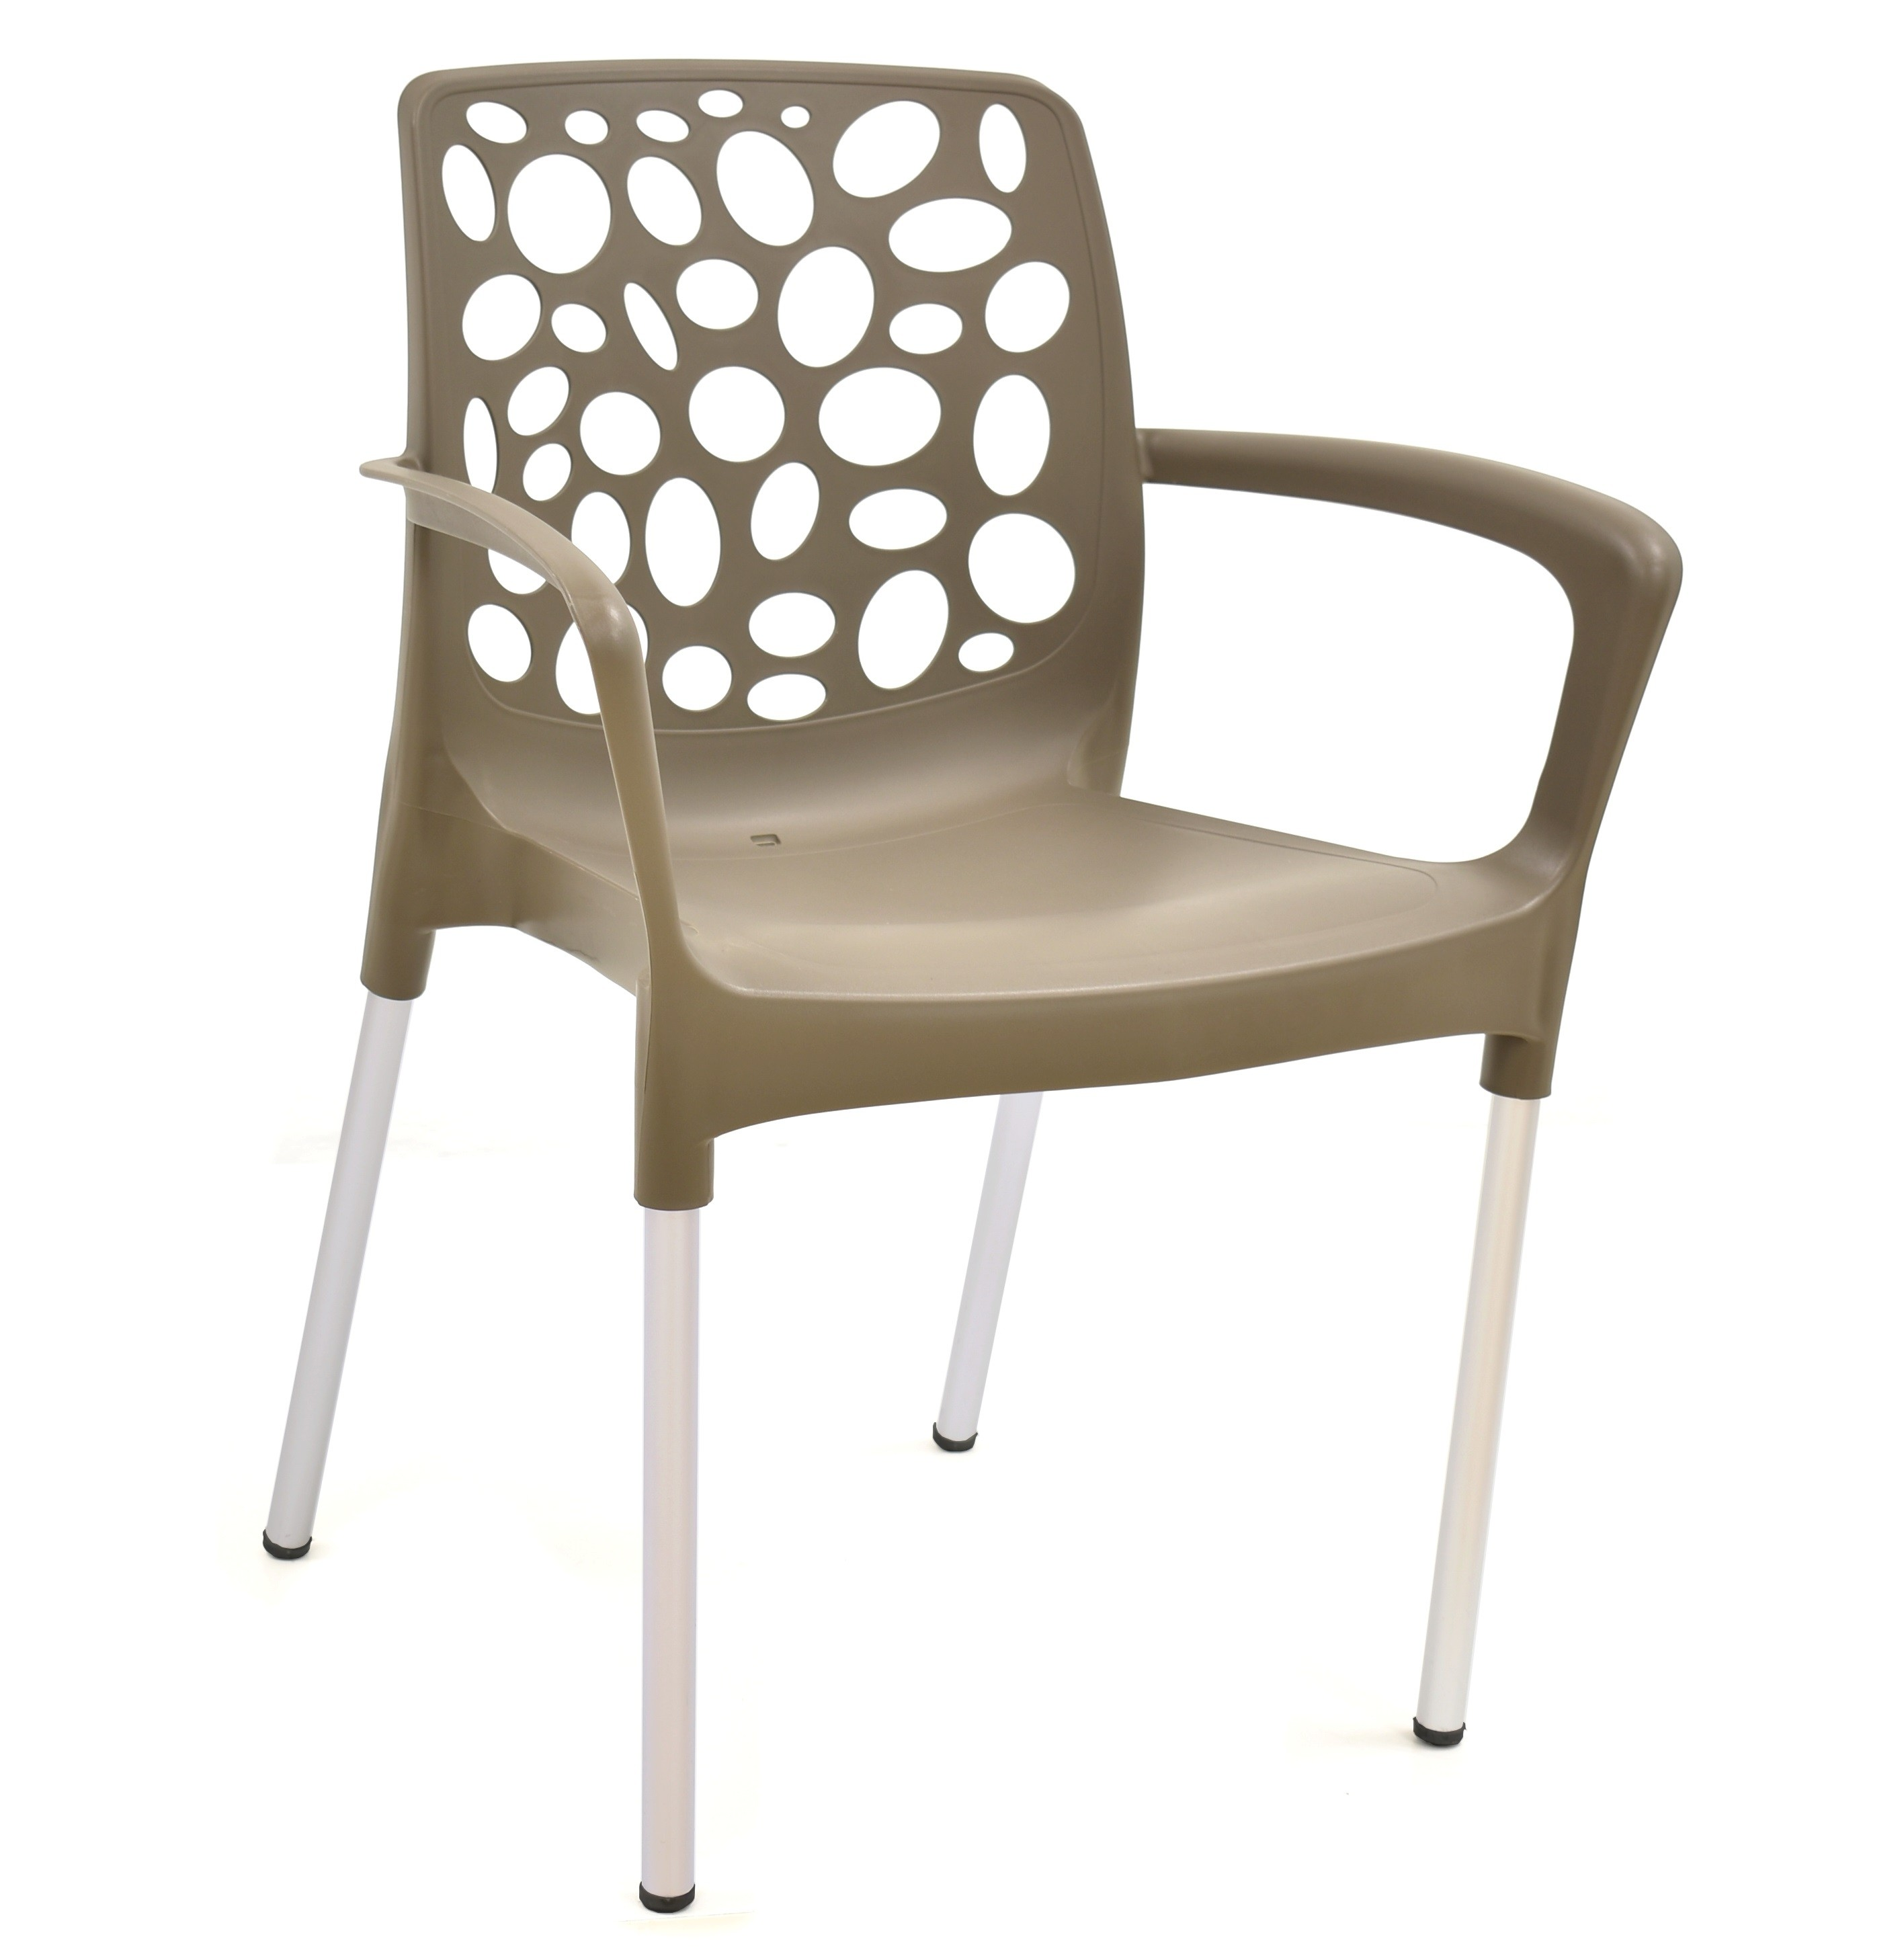 Armchair ALLEGRA, Aluminum, Stackable, Polypropylene Taupe